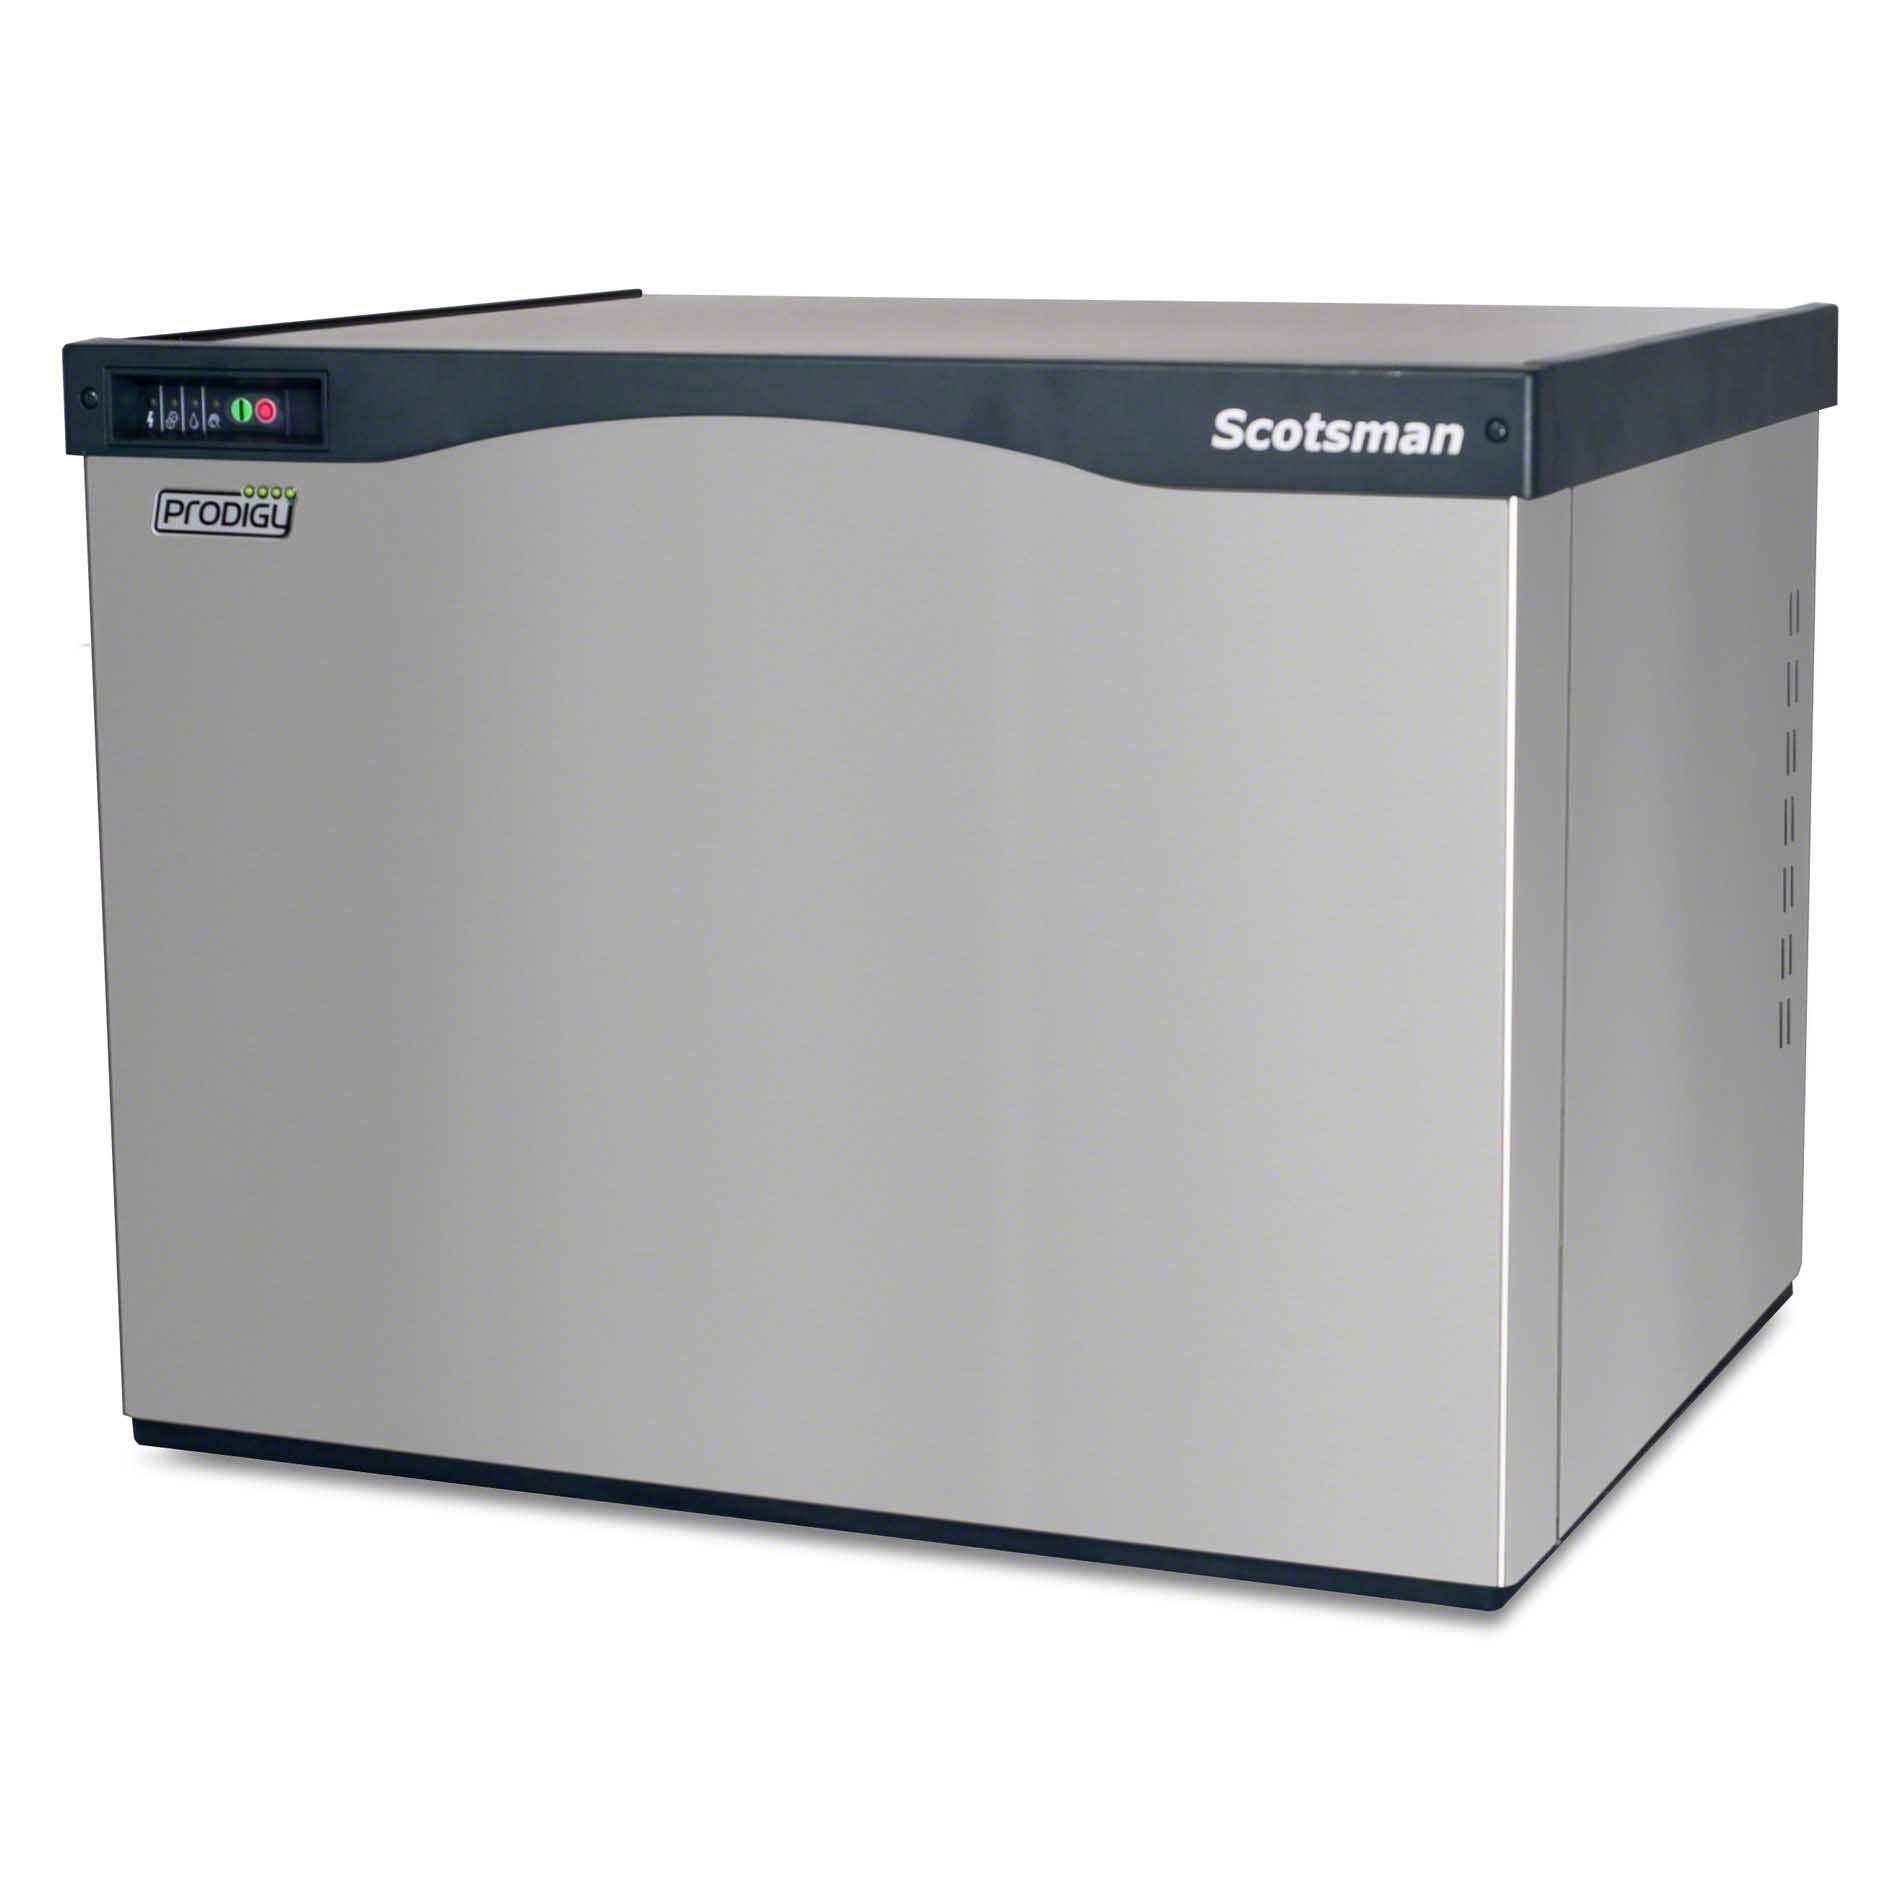 Scotsman - C0330SA-1A 350 lb Half Size Cube Ice Machine - Prodigy Series - sold by Food Service Warehouse